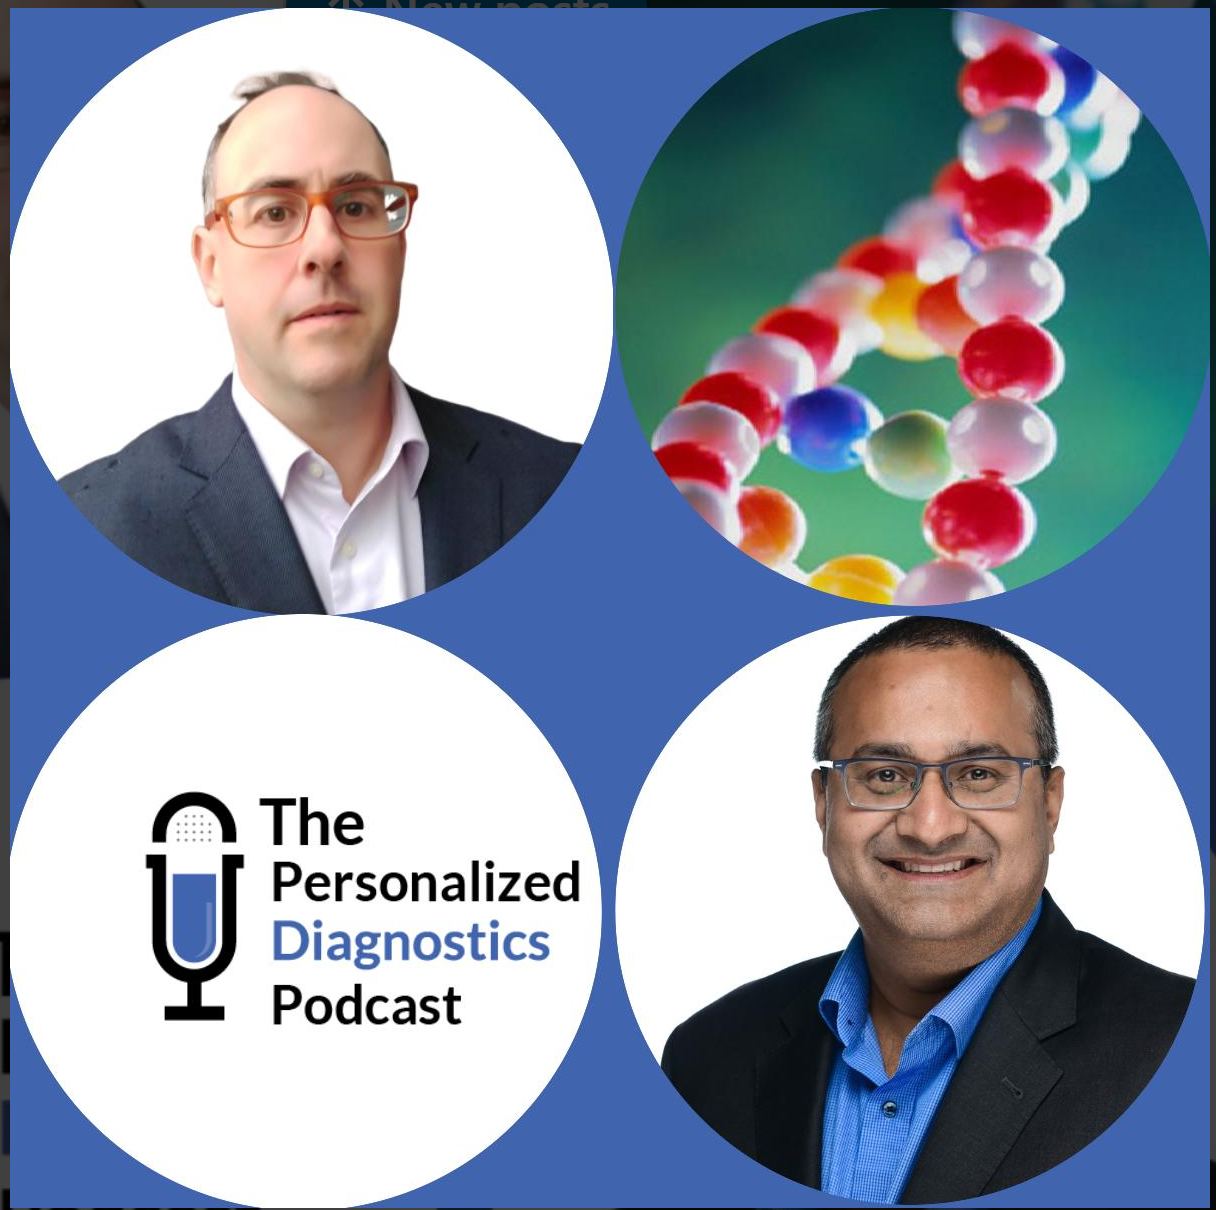 The Personalized Diagnostics Podcast